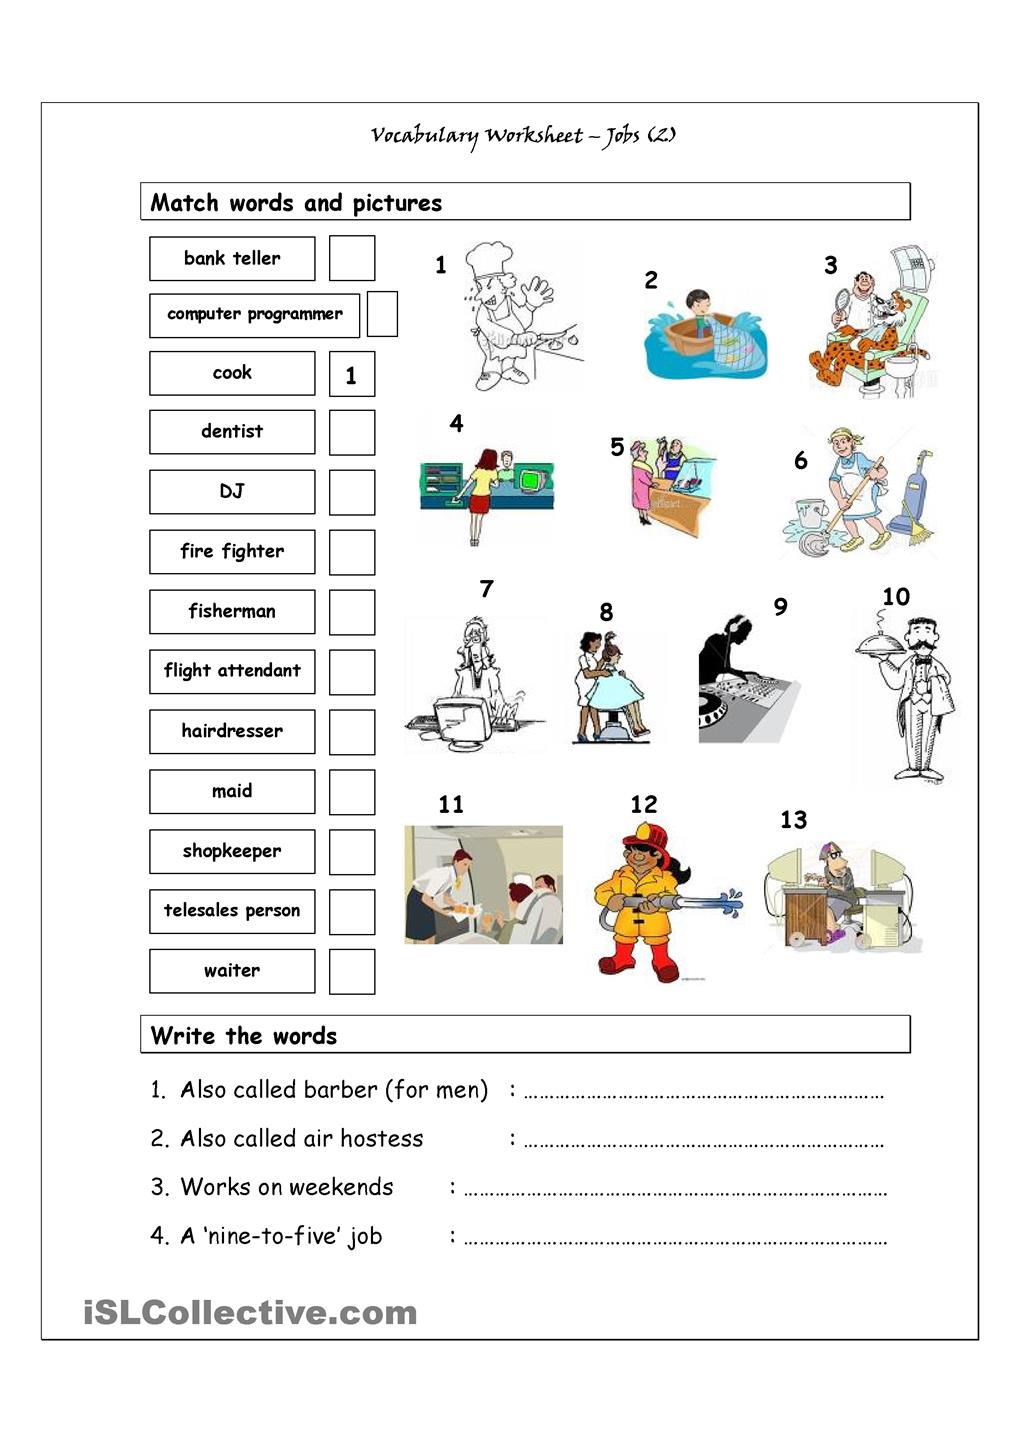 Jobs Flashcards furthermore Big Let Me Introduce Myself likewise Vocabulary Matching Worksheet Jobs also Learning Material For Worksheets Free Printable Year Olds Math Three Pi Best Images Of further Short Vowel Worksheets. on kindergarten worksheets reading